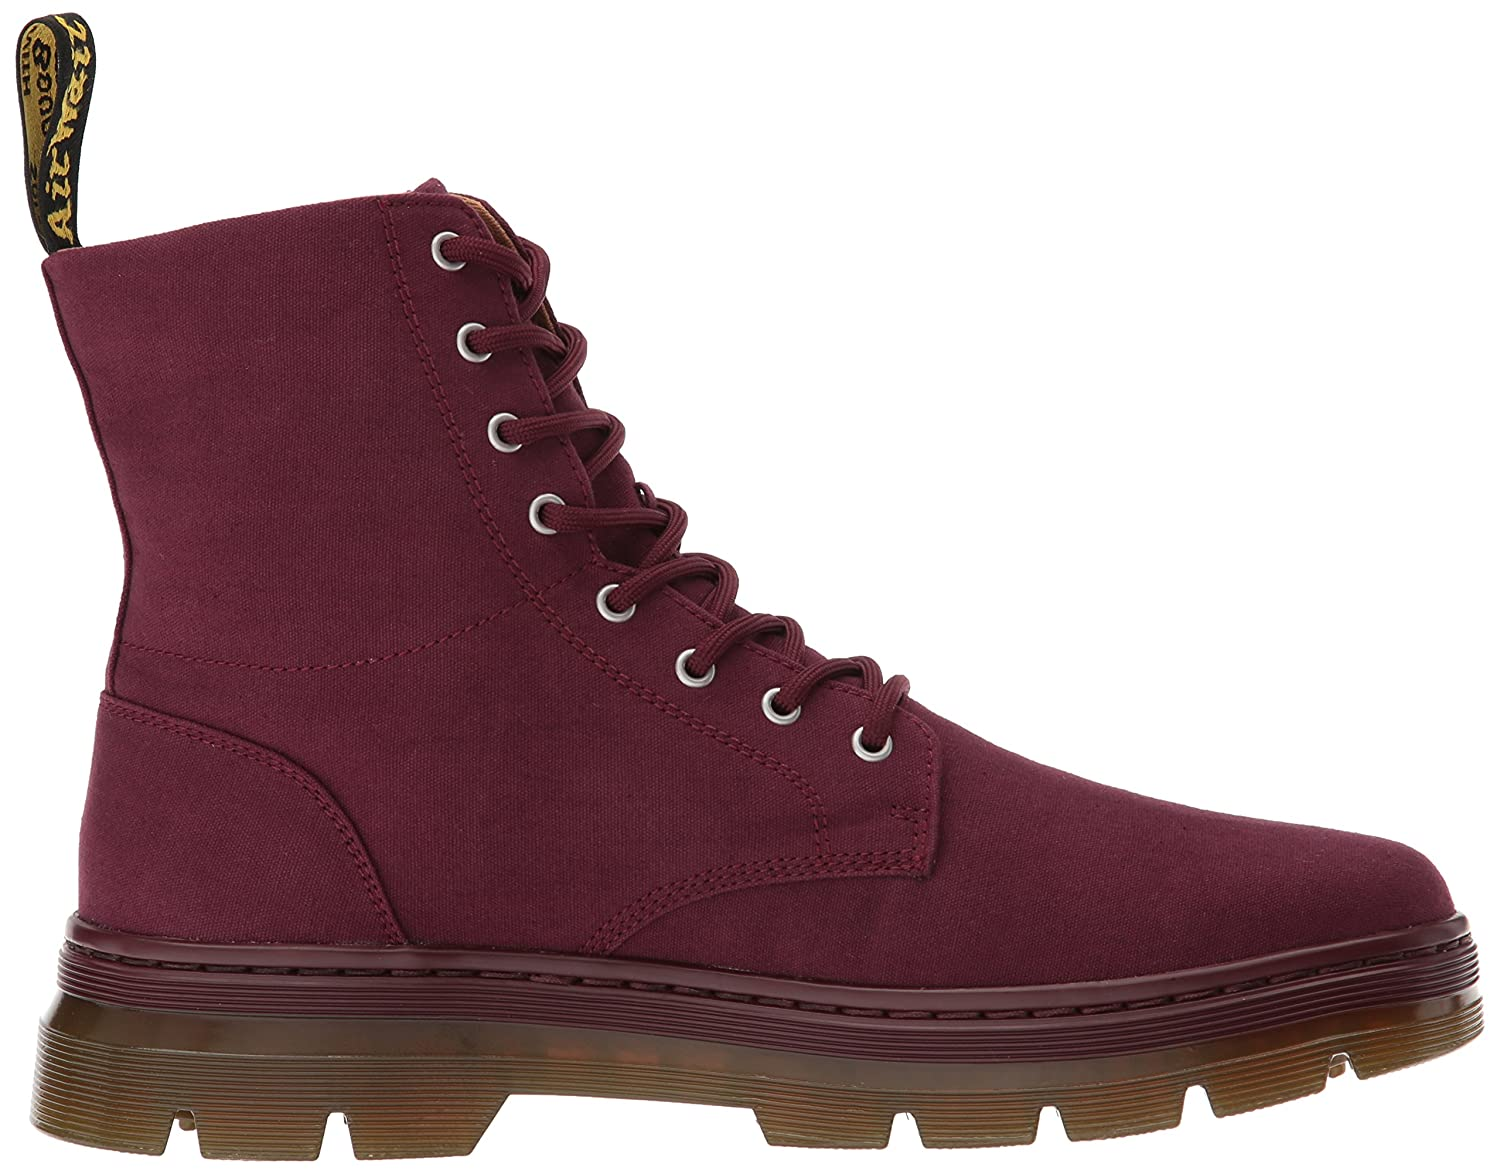 Dr. Martens Combs Canvas Fashion Boot B071GFWTTD 6 Medium UK Men's (US Women's 8, US Men's UK 7 US)|Port 583a26